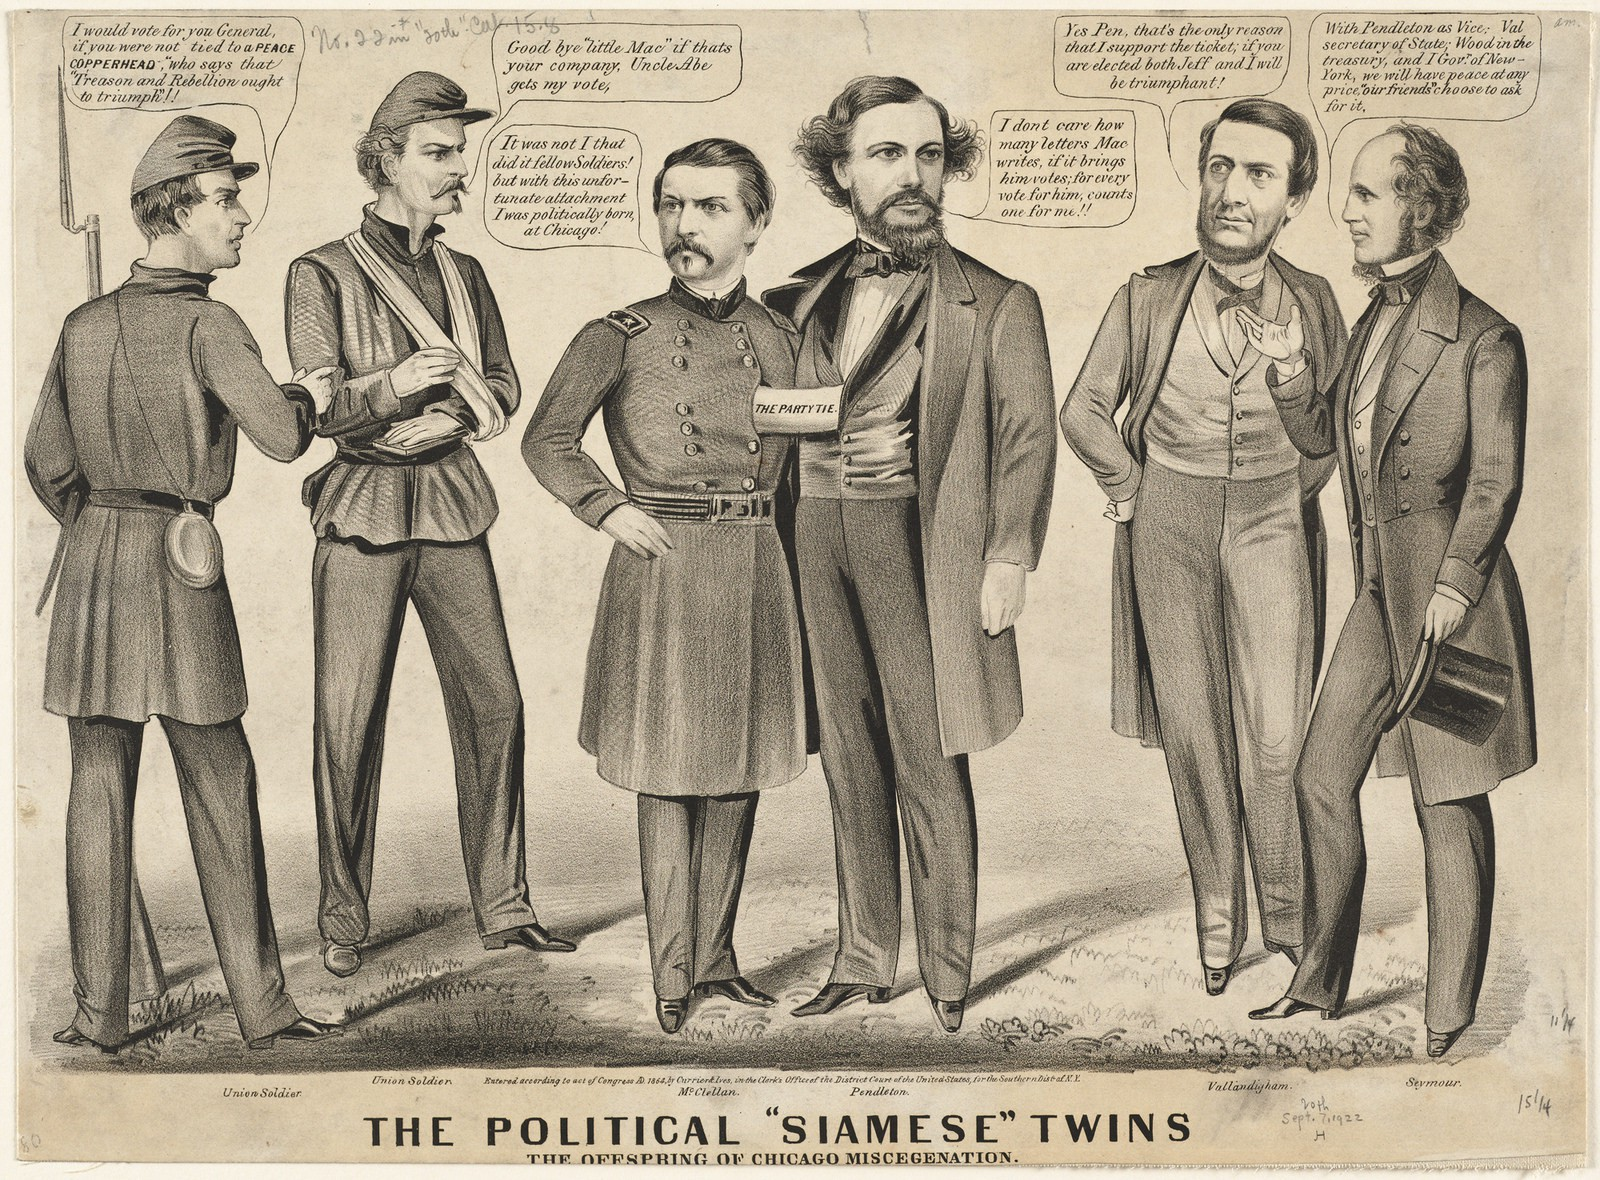 """The political """"Siamese"""" twins, the offspring of Chicago miscegenation 